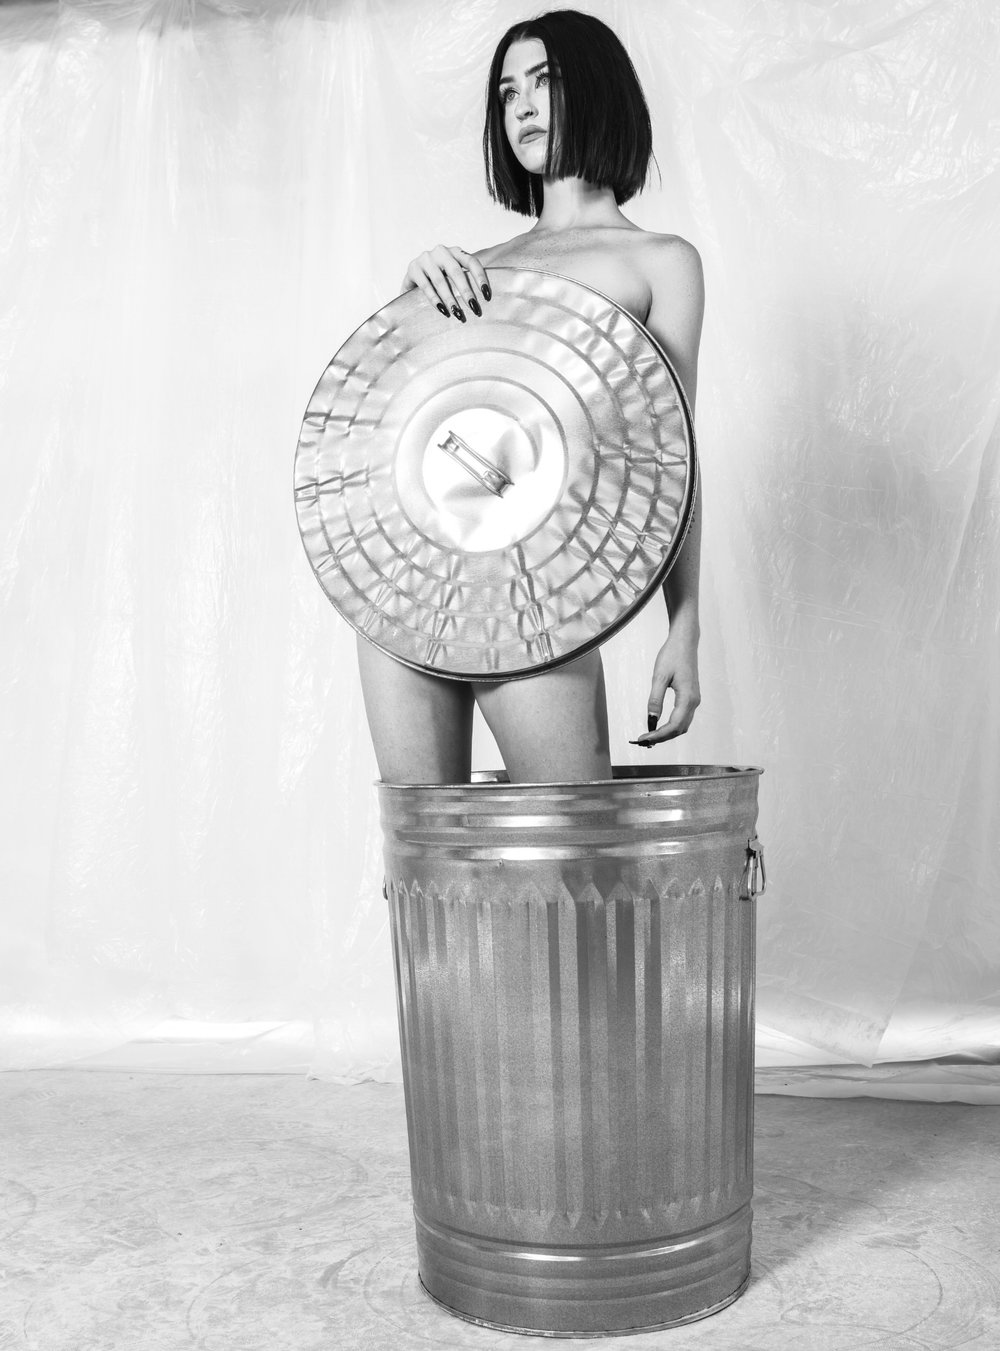 THE DUMPSTER SHOW - Trash fashion at the Lavatory. This is your chance to get a sneak peak at the Pit. From the dump to the runway, artists, stylists, fashion designers and architect Eddie Jones create a look from the cylindrical file.October 26, 2018. 4700 N. 12th Street, Phoenix.Tickets ($18)